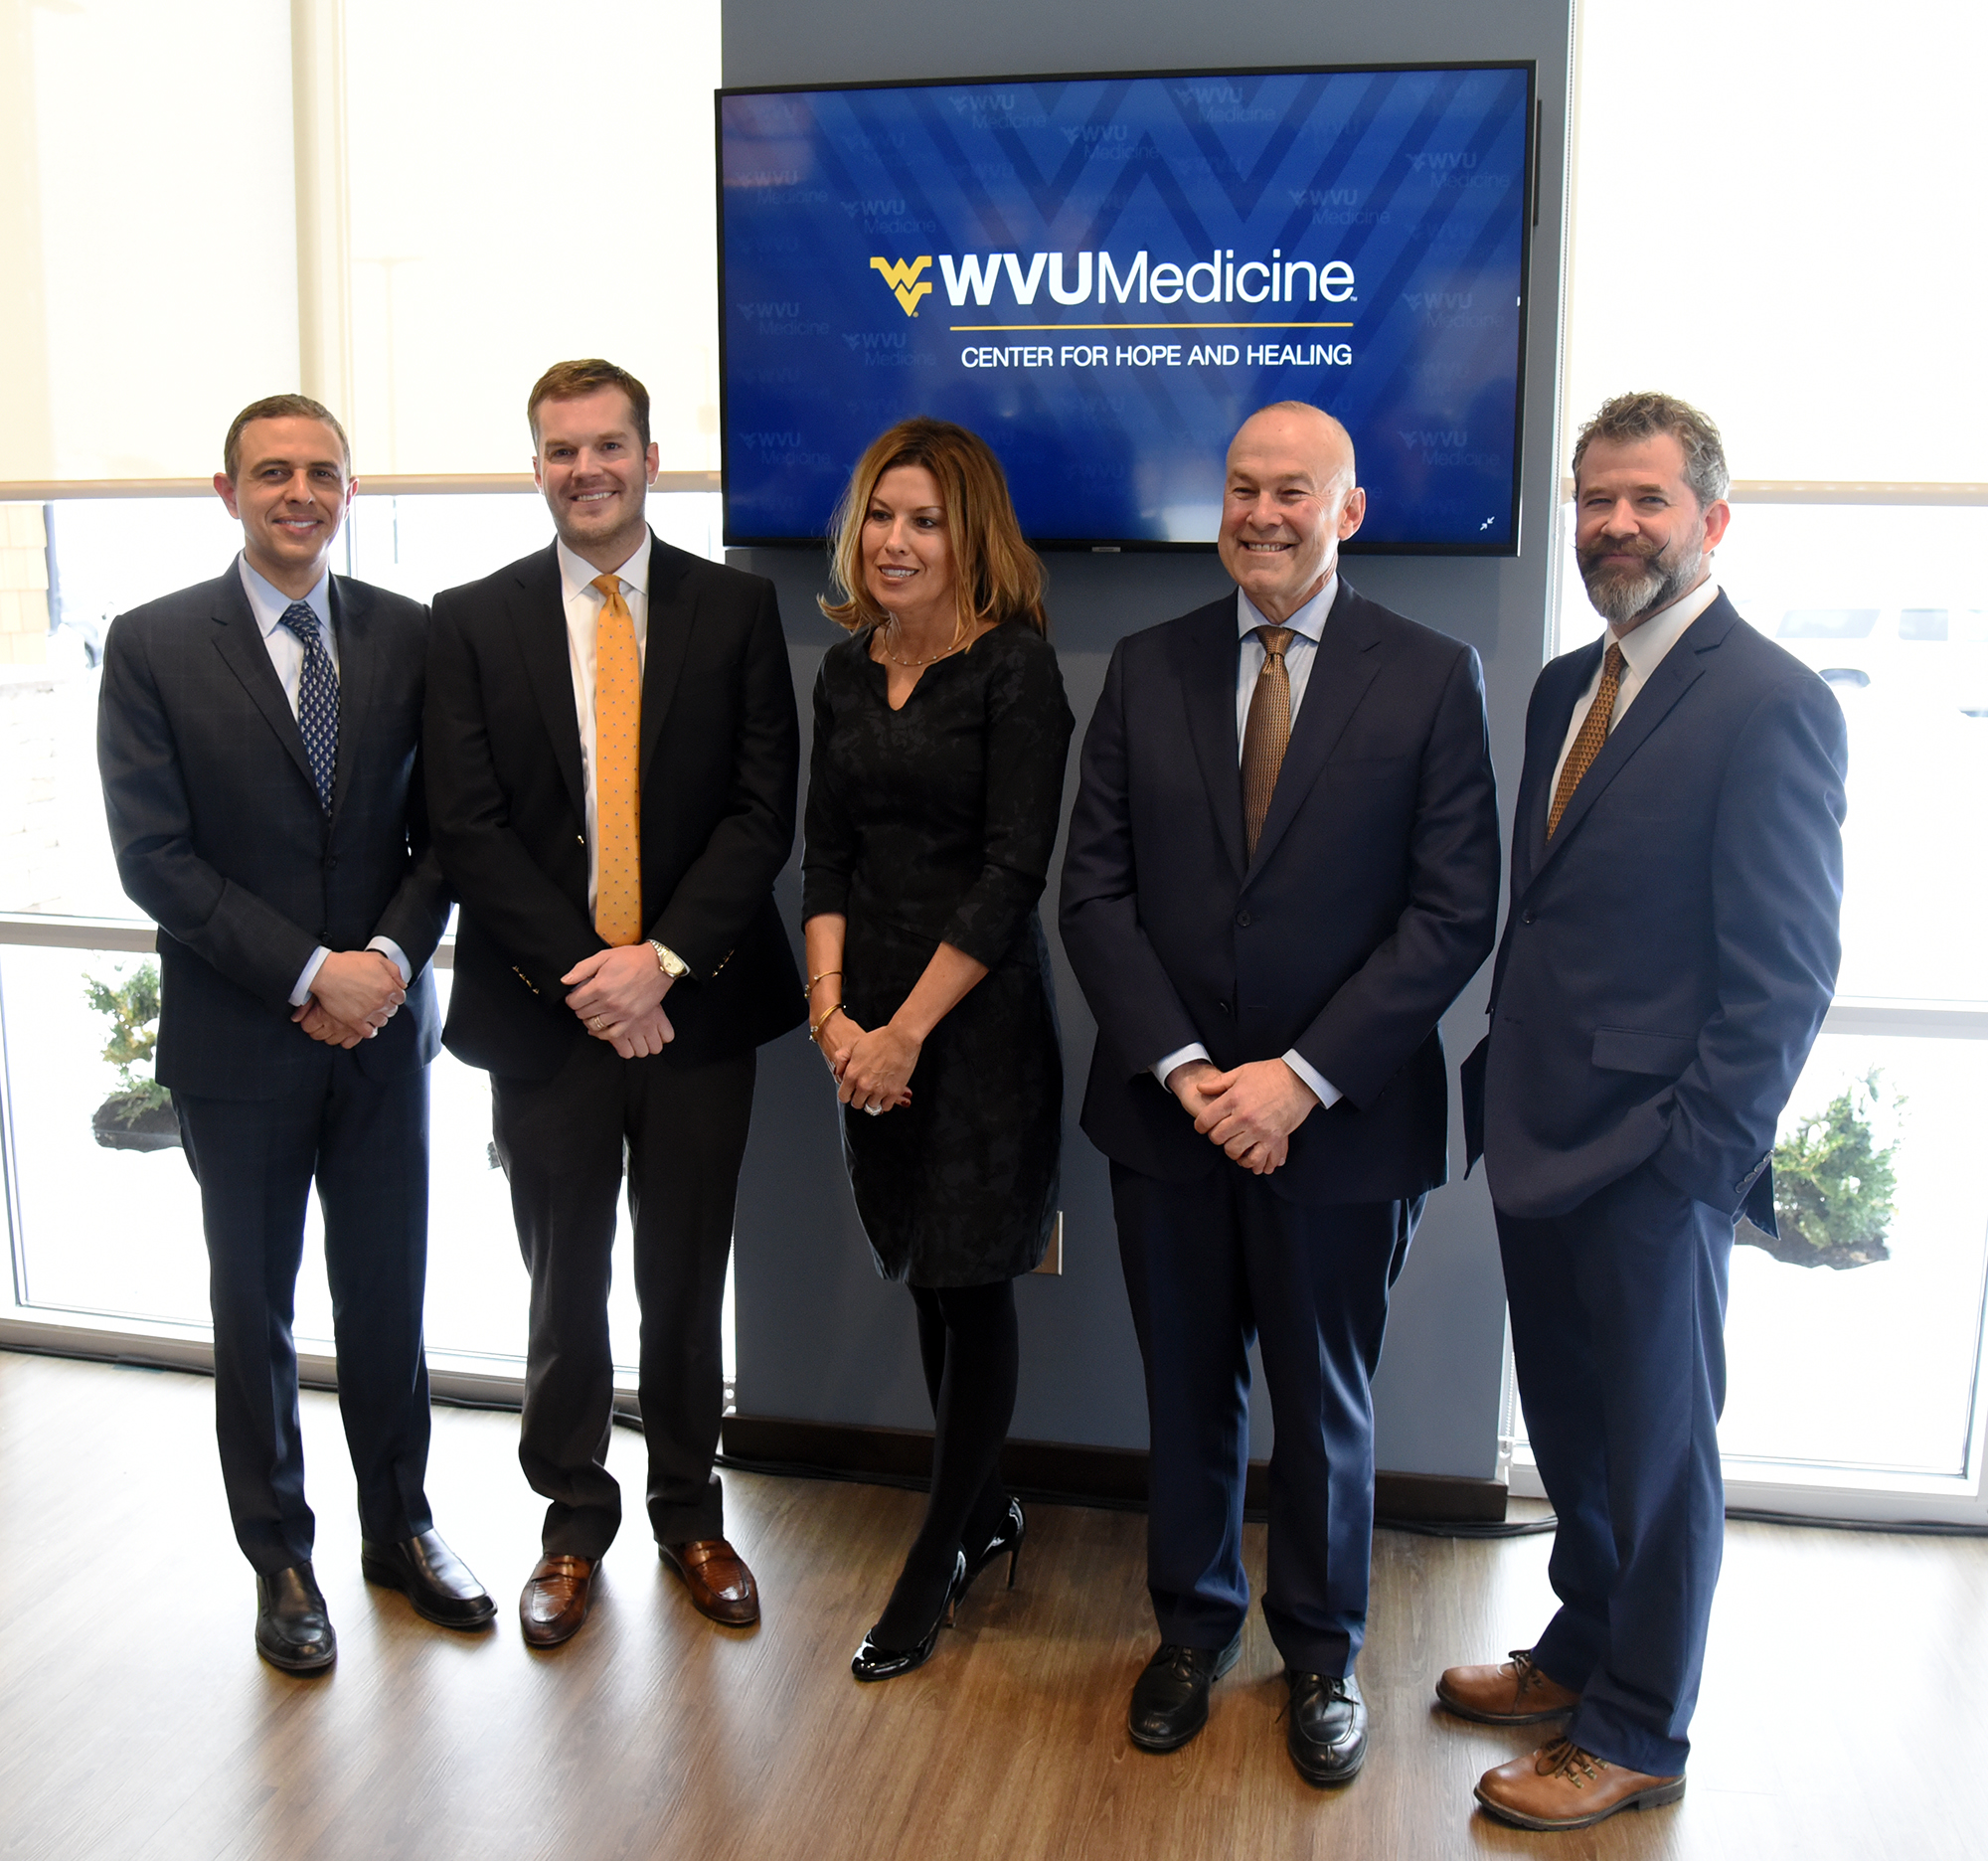 (From left to right) Ali Rezai, M.D., executive chair of the WVU Rockefeller Neuroscience; Douglas M. Leech, founder and CEO of Ascension Recovery Services; Amy Bush-Marone, R.N., B.S.N., M.B.A., WVU Medicine vice president of clinical operations; Clay B. Marsh, M.D., vice president and executive dean of WVU Health Sciences; and James Berry, D.O., director of addiction services, WVU Medicine Chestnut Ridge Center, and interim chair, WVU Department of Behavioral Medicine and Psychiatry, were among those gathered to celebrate the opening of the WVU Medicine Center for Hope and Healing today (March 1).